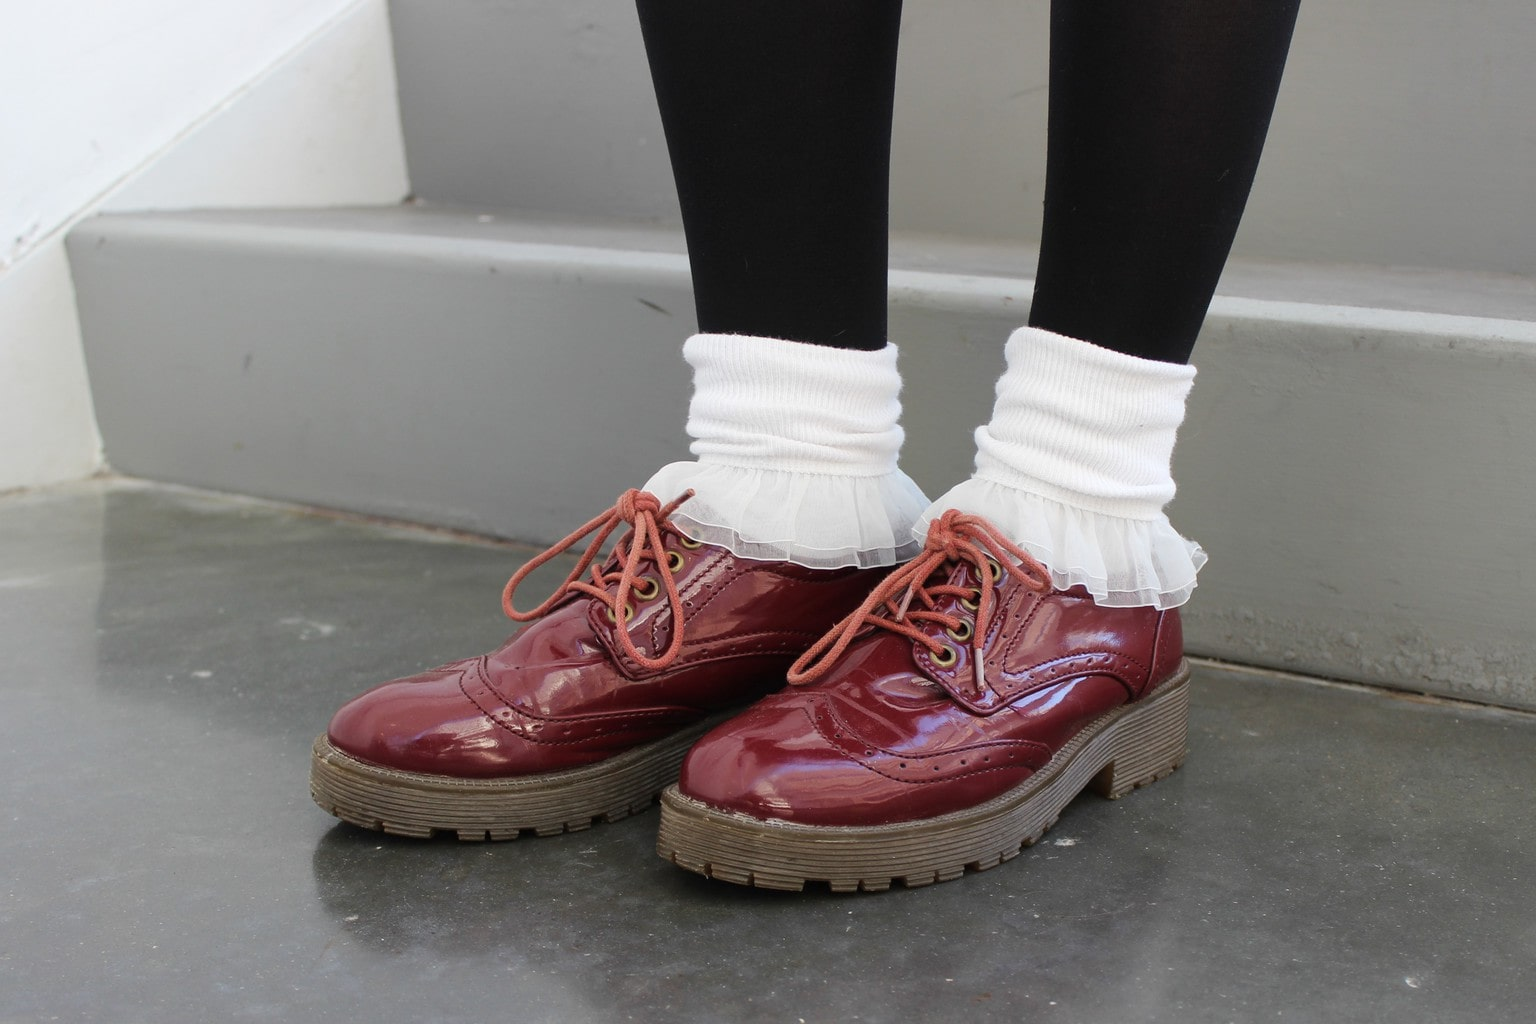 Hannah pairs white ruffled socks with chunky burgundy lace-up Doc Marten loafers.